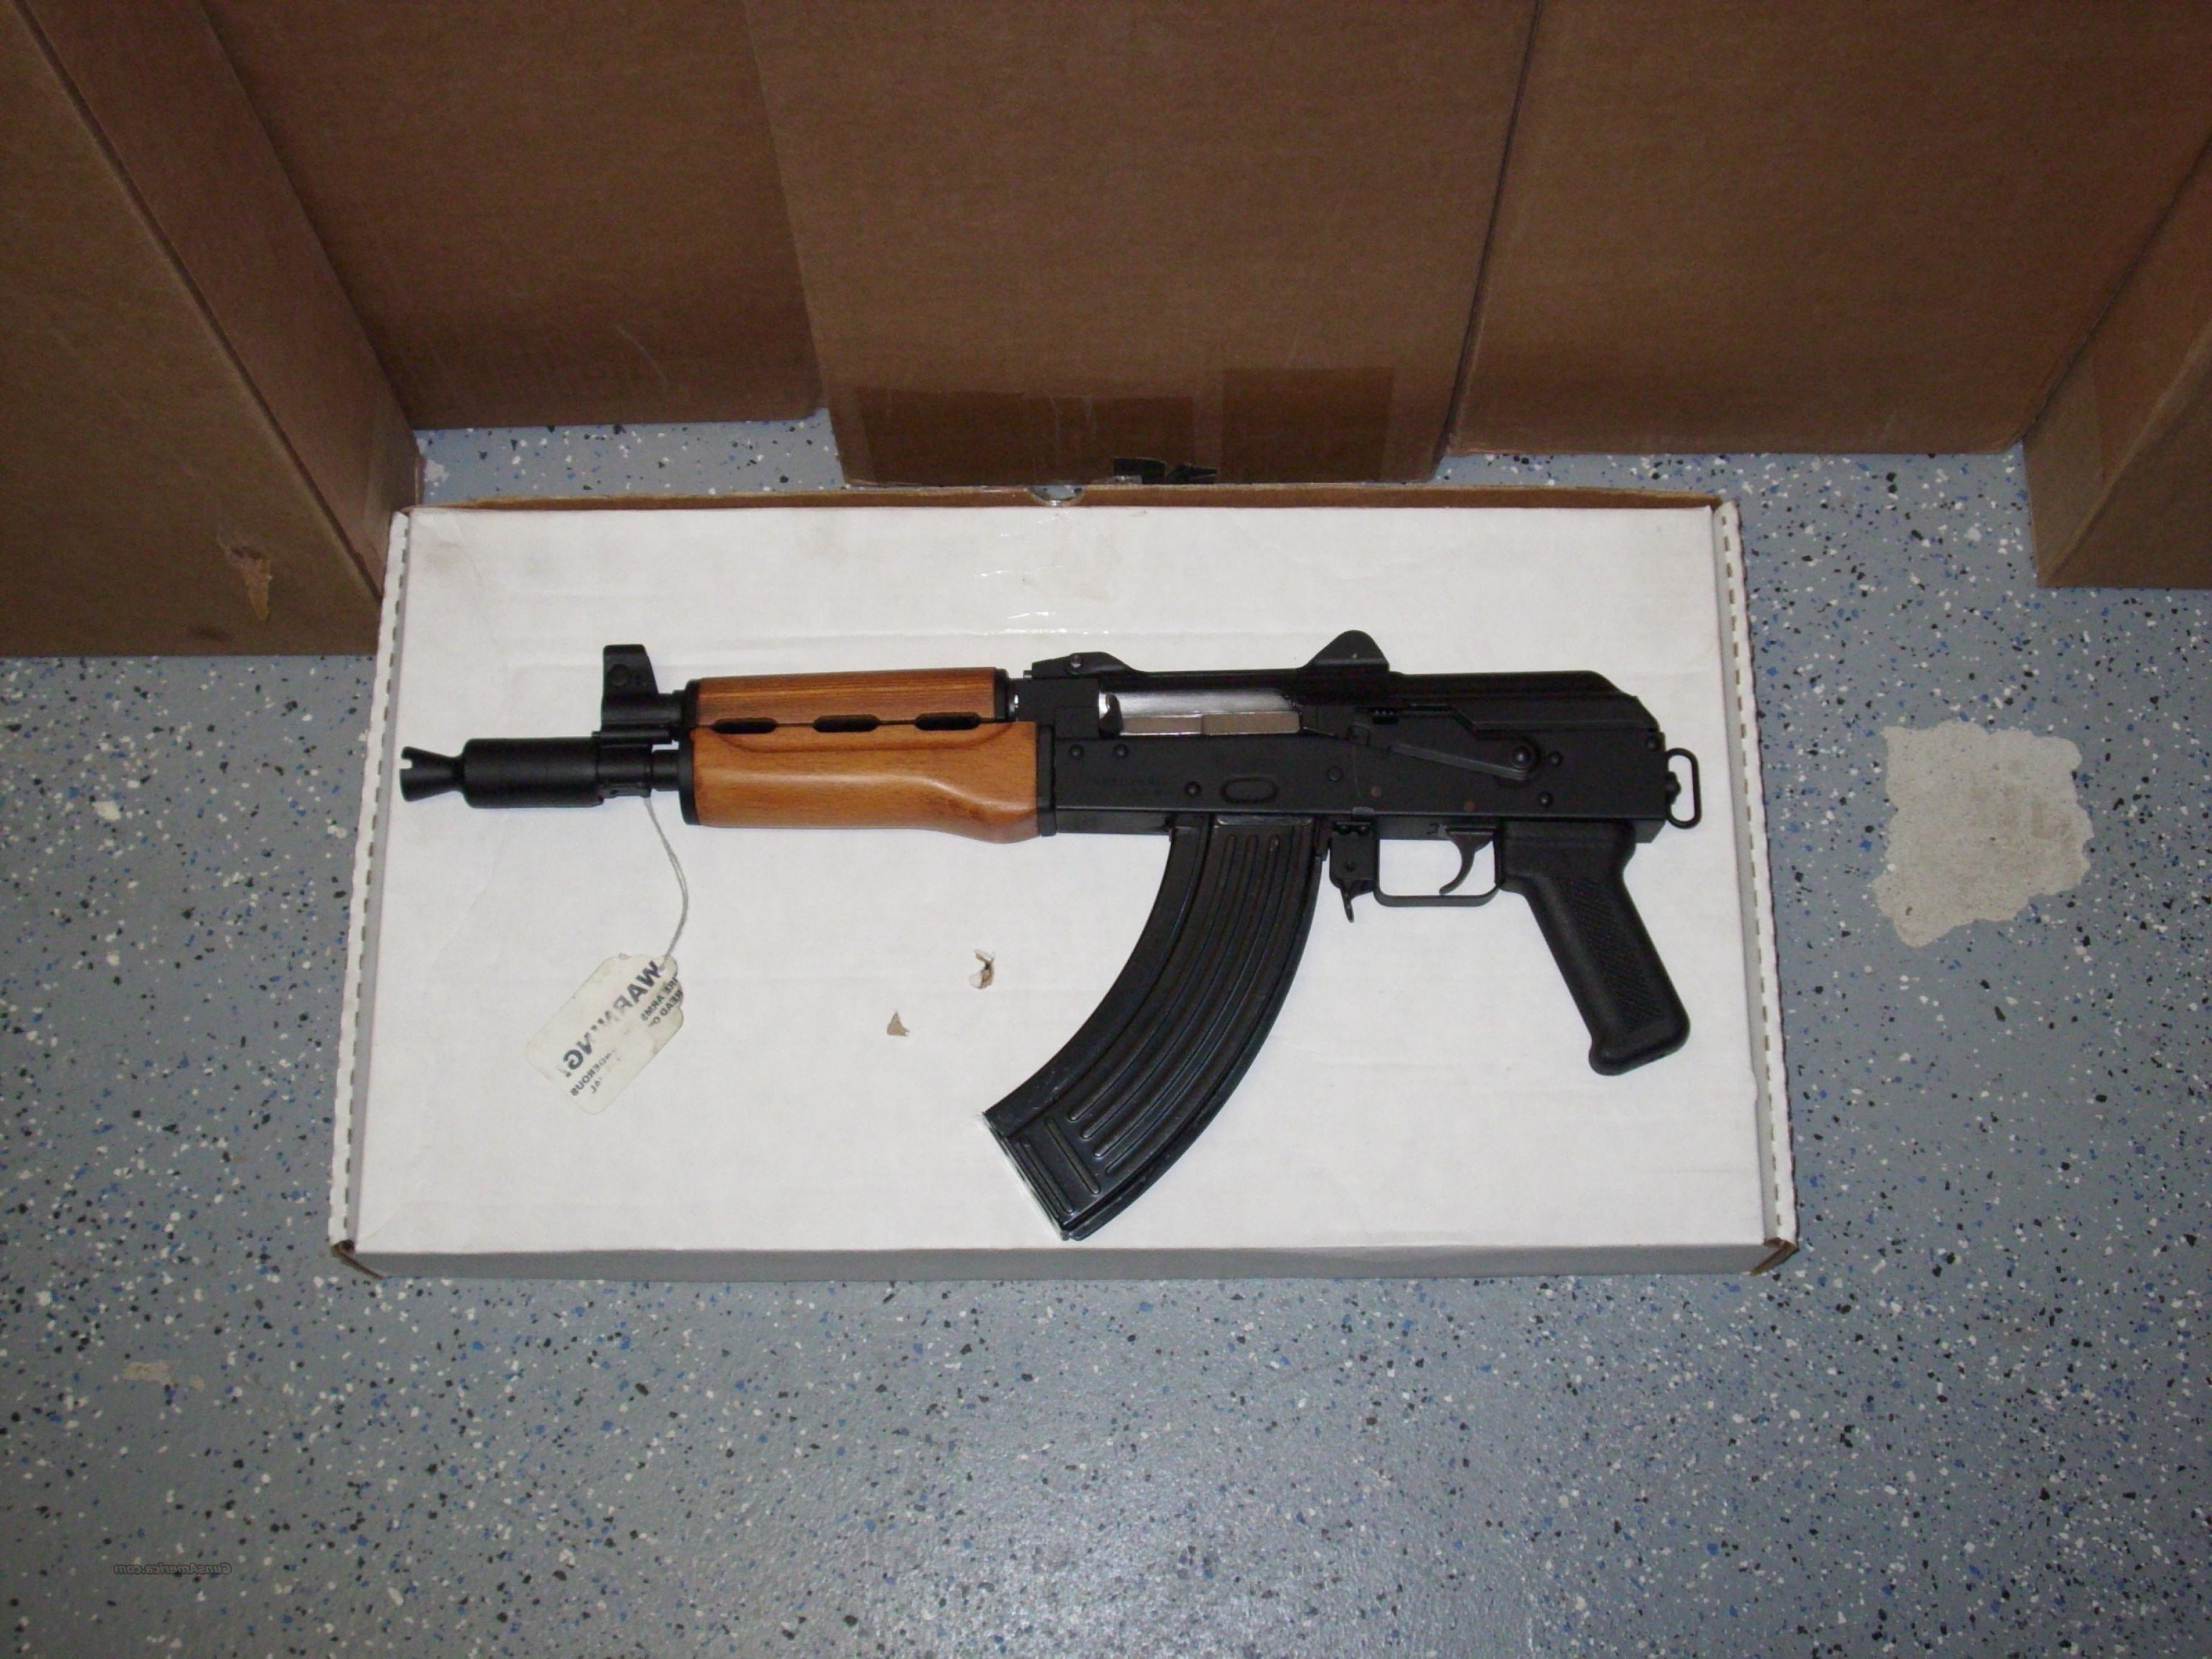 Vector Arms AK-47 Underfolder: Do Vector Arms Ak Have Milled Receiver